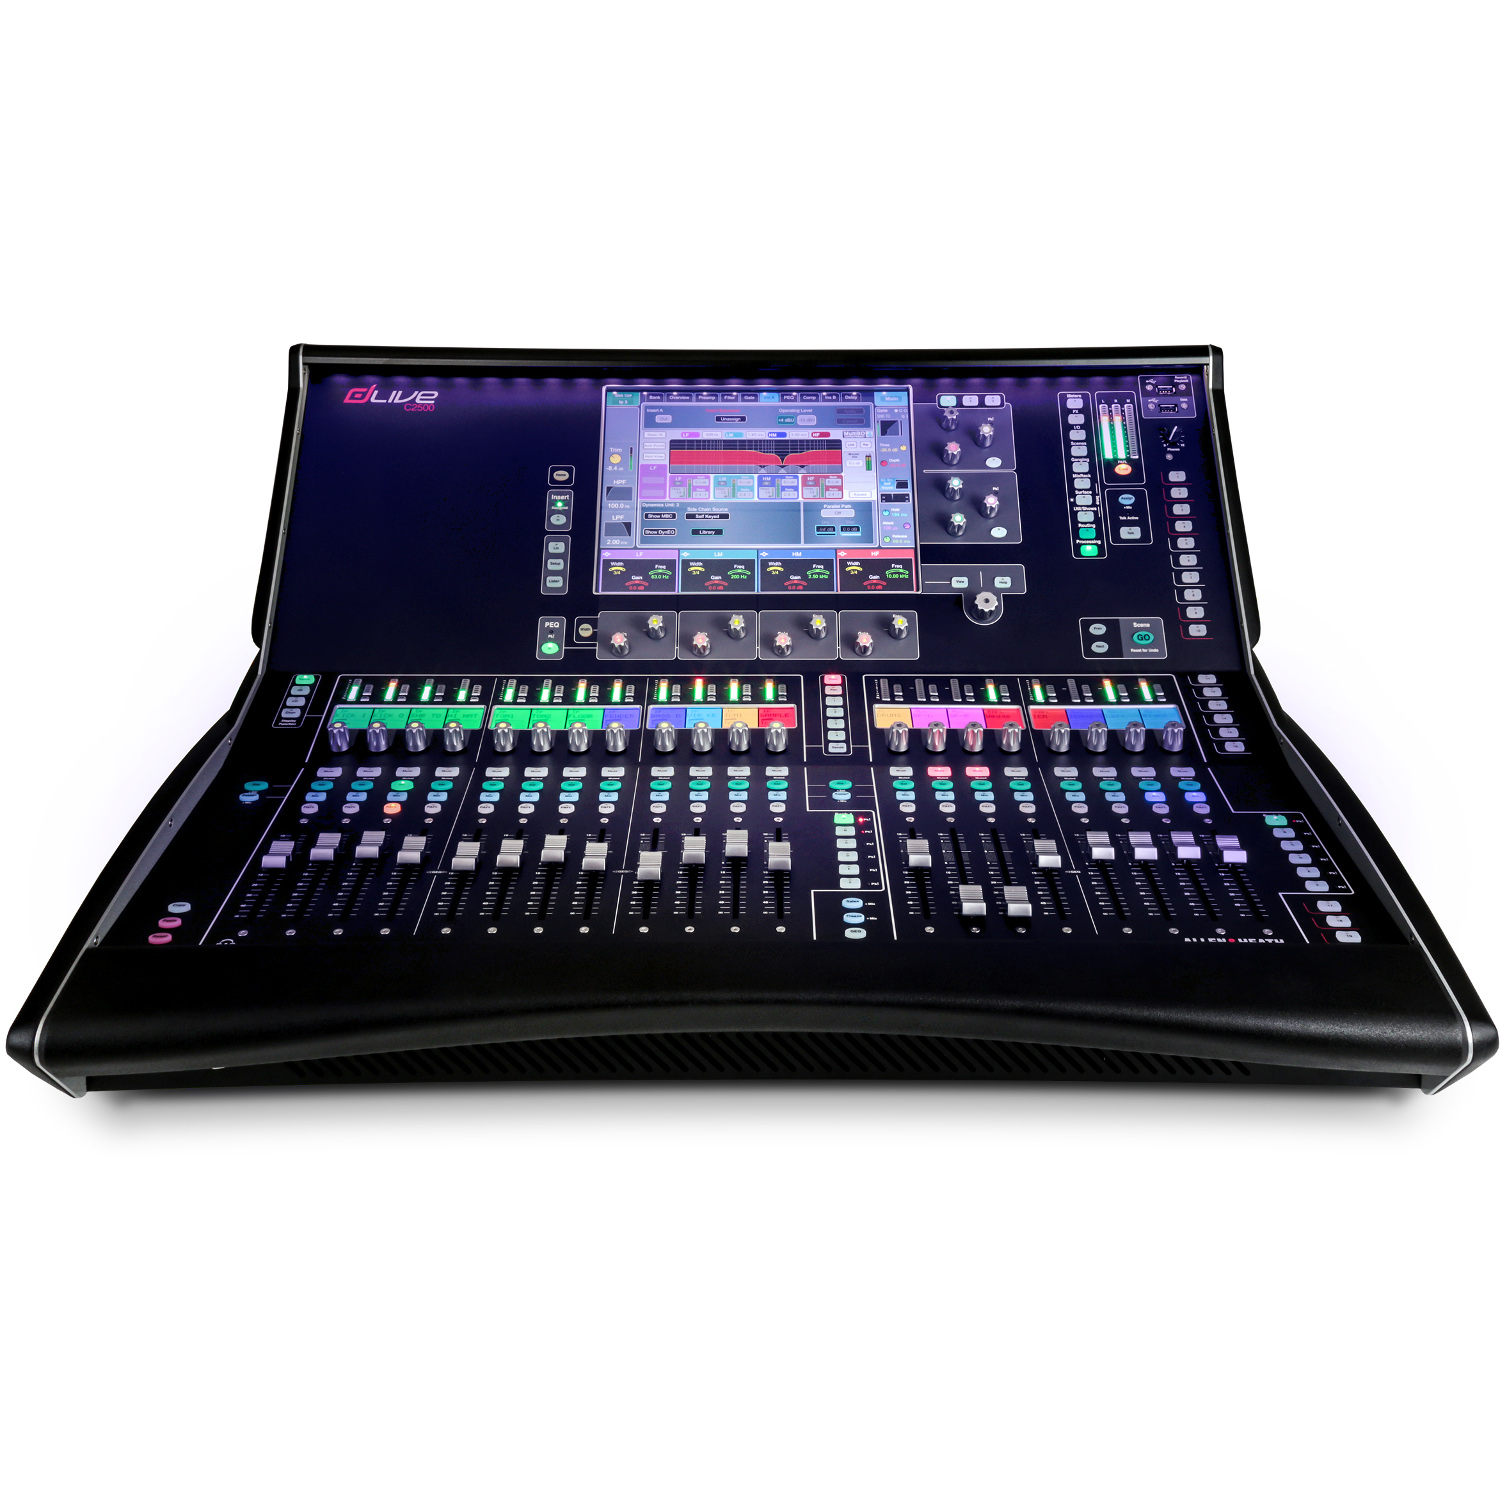 Allen & Heath Surface DLive C2500